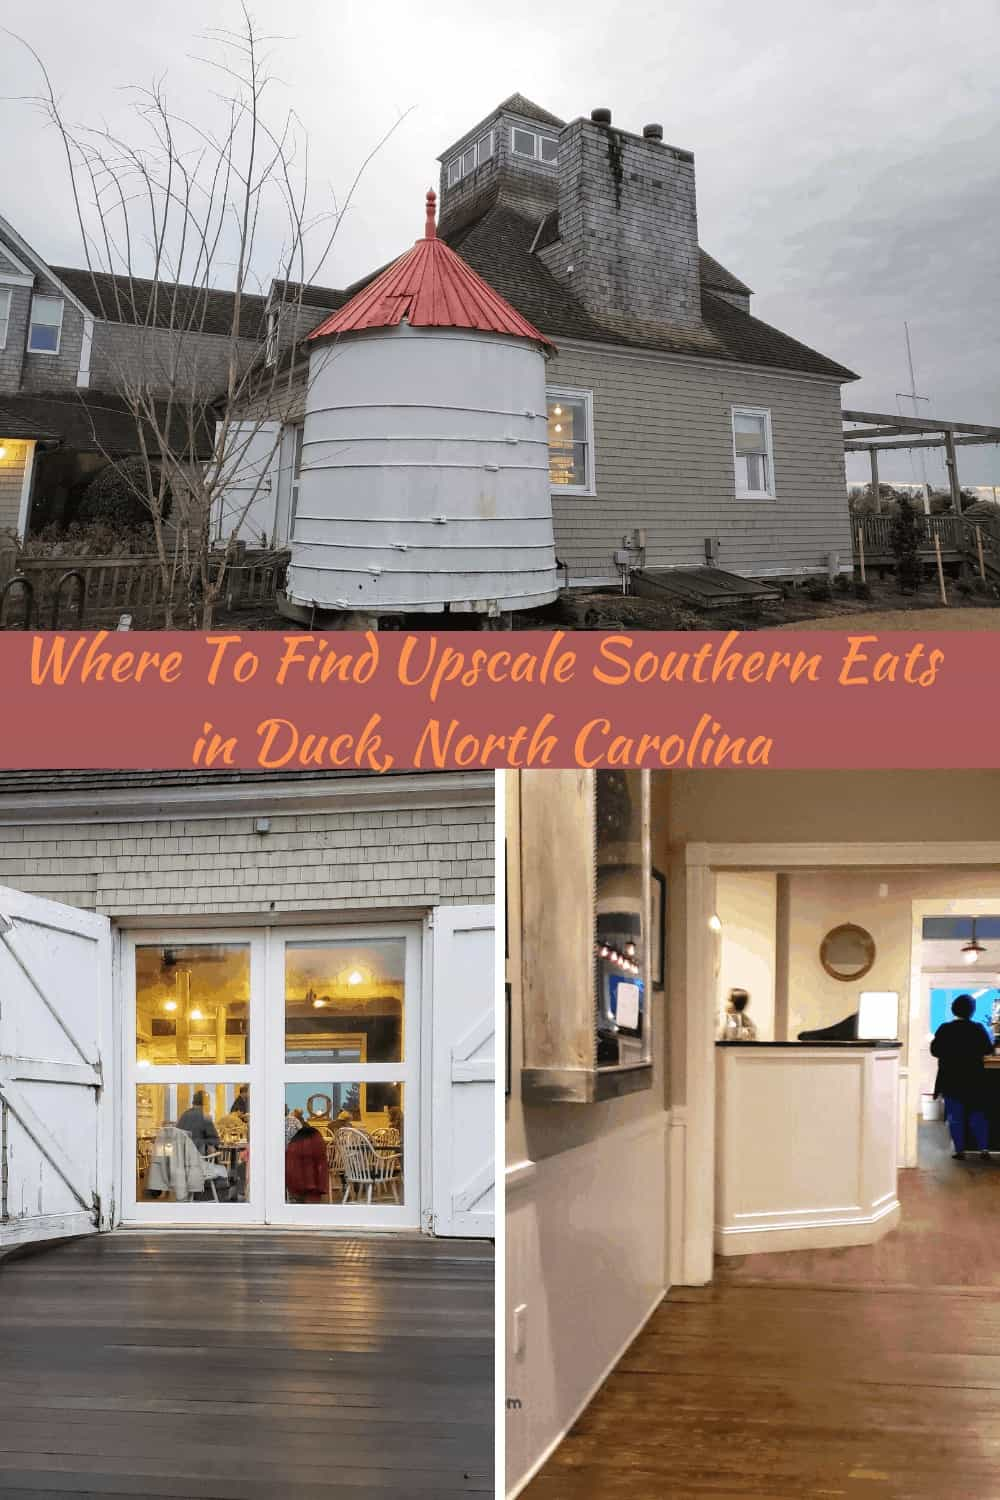 Where To Find Upscale Southern Eats in Duck, North Carolina at the Lifesaving Station Interior and Exterior